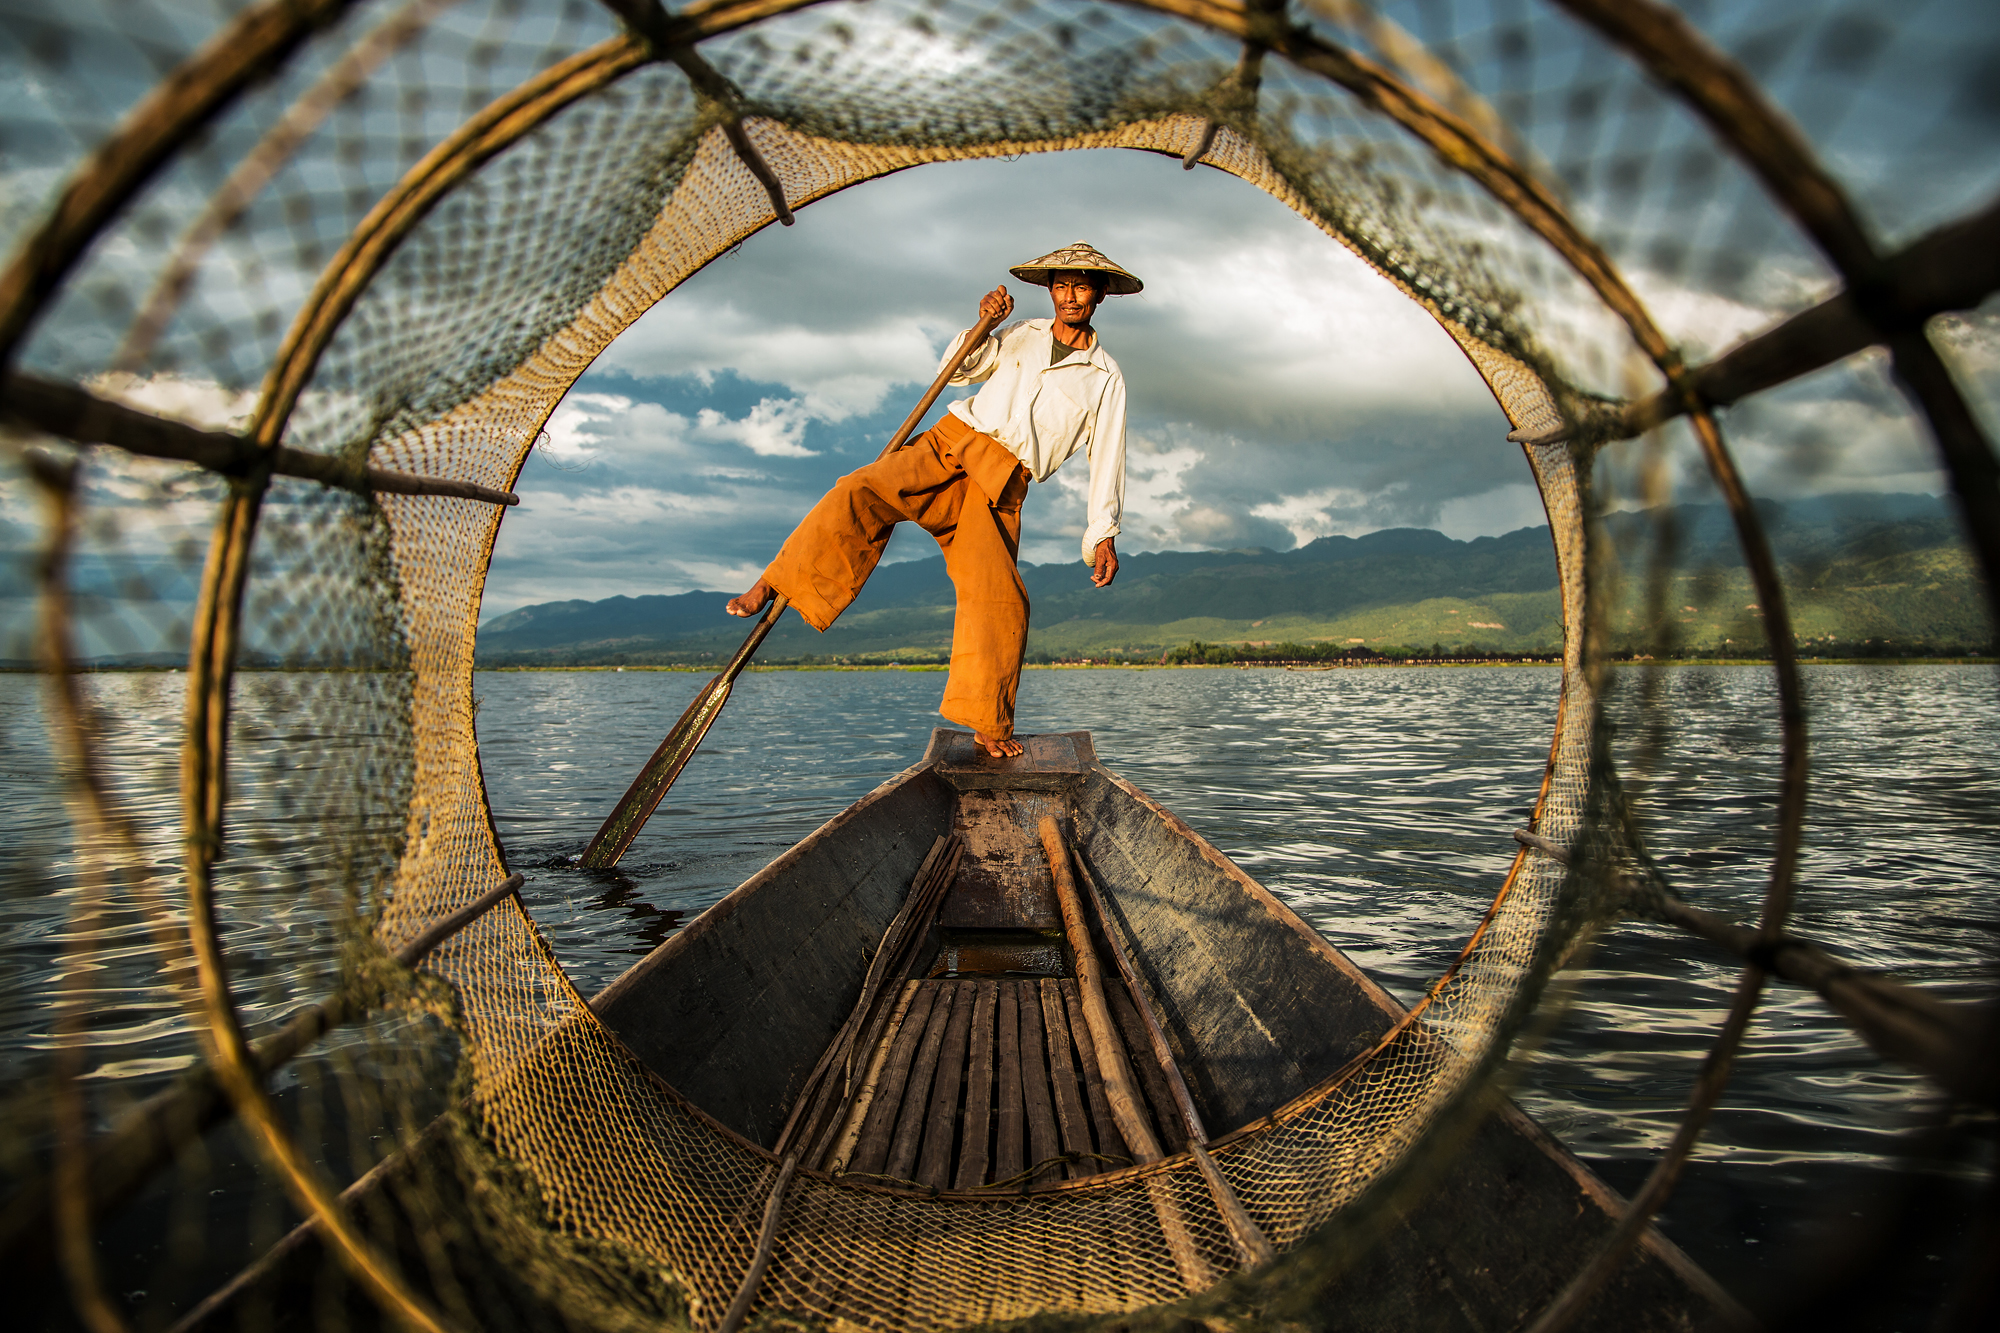 One leg rower on Inle-Lake, Myanmar